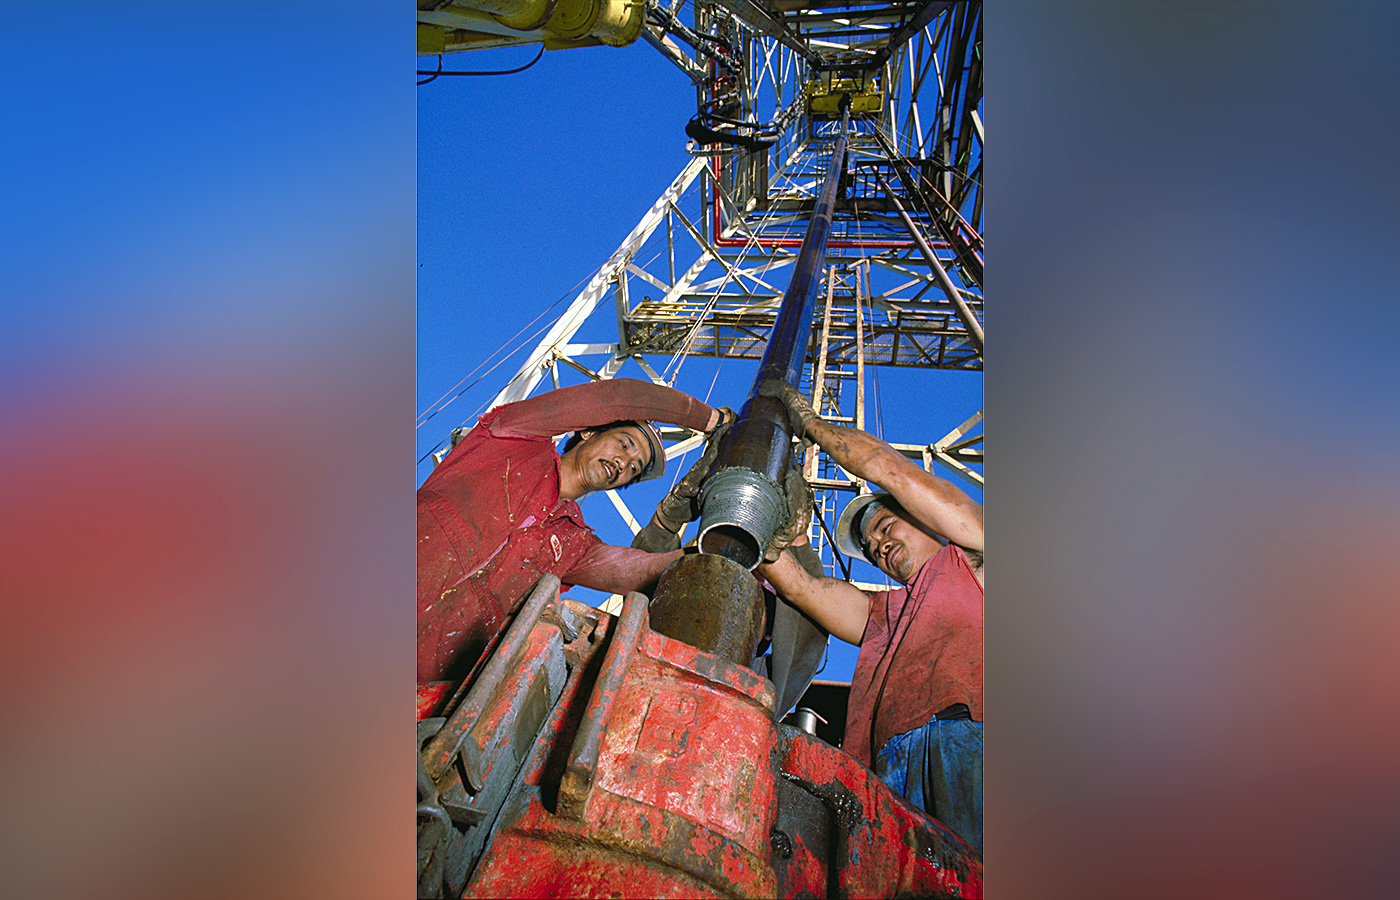 The drilling crew attach a piece of drillpipe hanging from the derrick (the tall structure) to the drillstring that is already below the ship (the top of the drillstring is the brown metal piece sticking above the red structure).